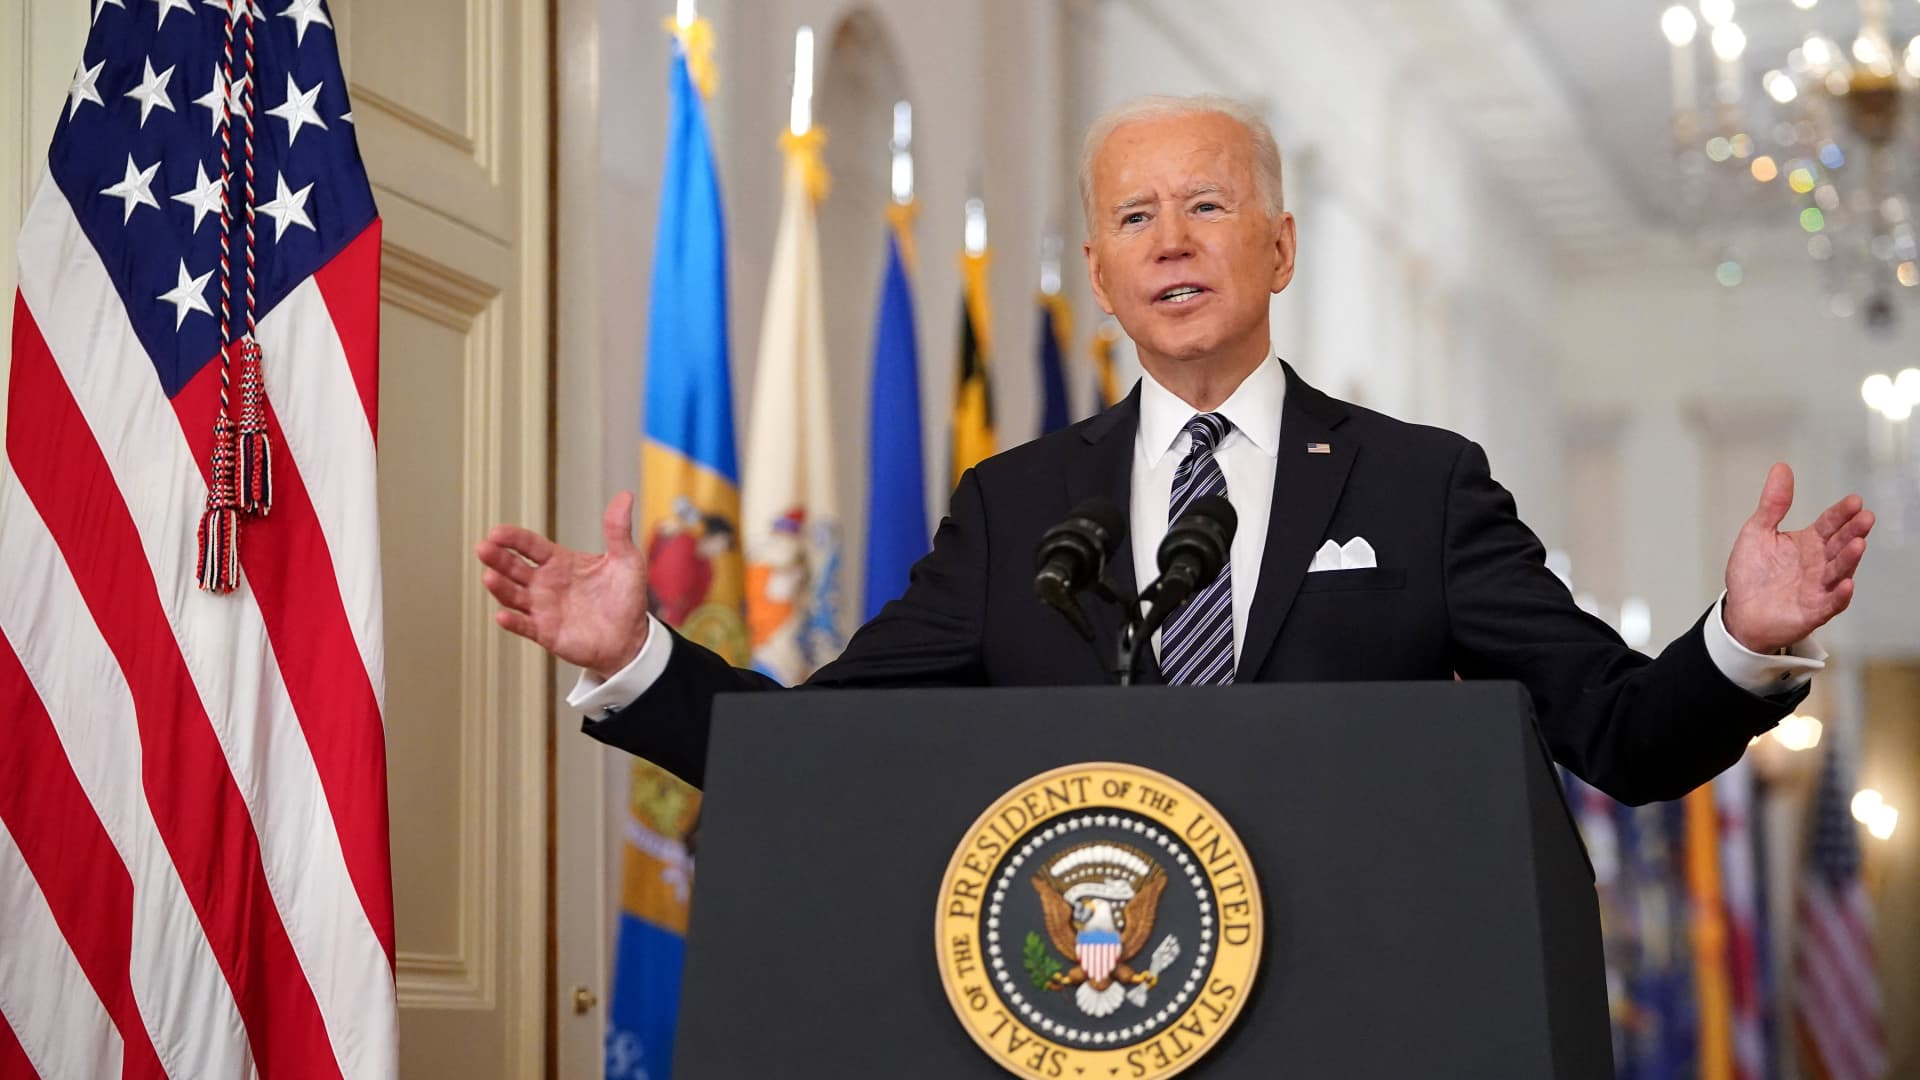 President Joe Biden gestures as he speaks on the anniversary of the start of the Covid-19 pandemic, in the East Room of the White House in Washington, DC on March 11, 2021.